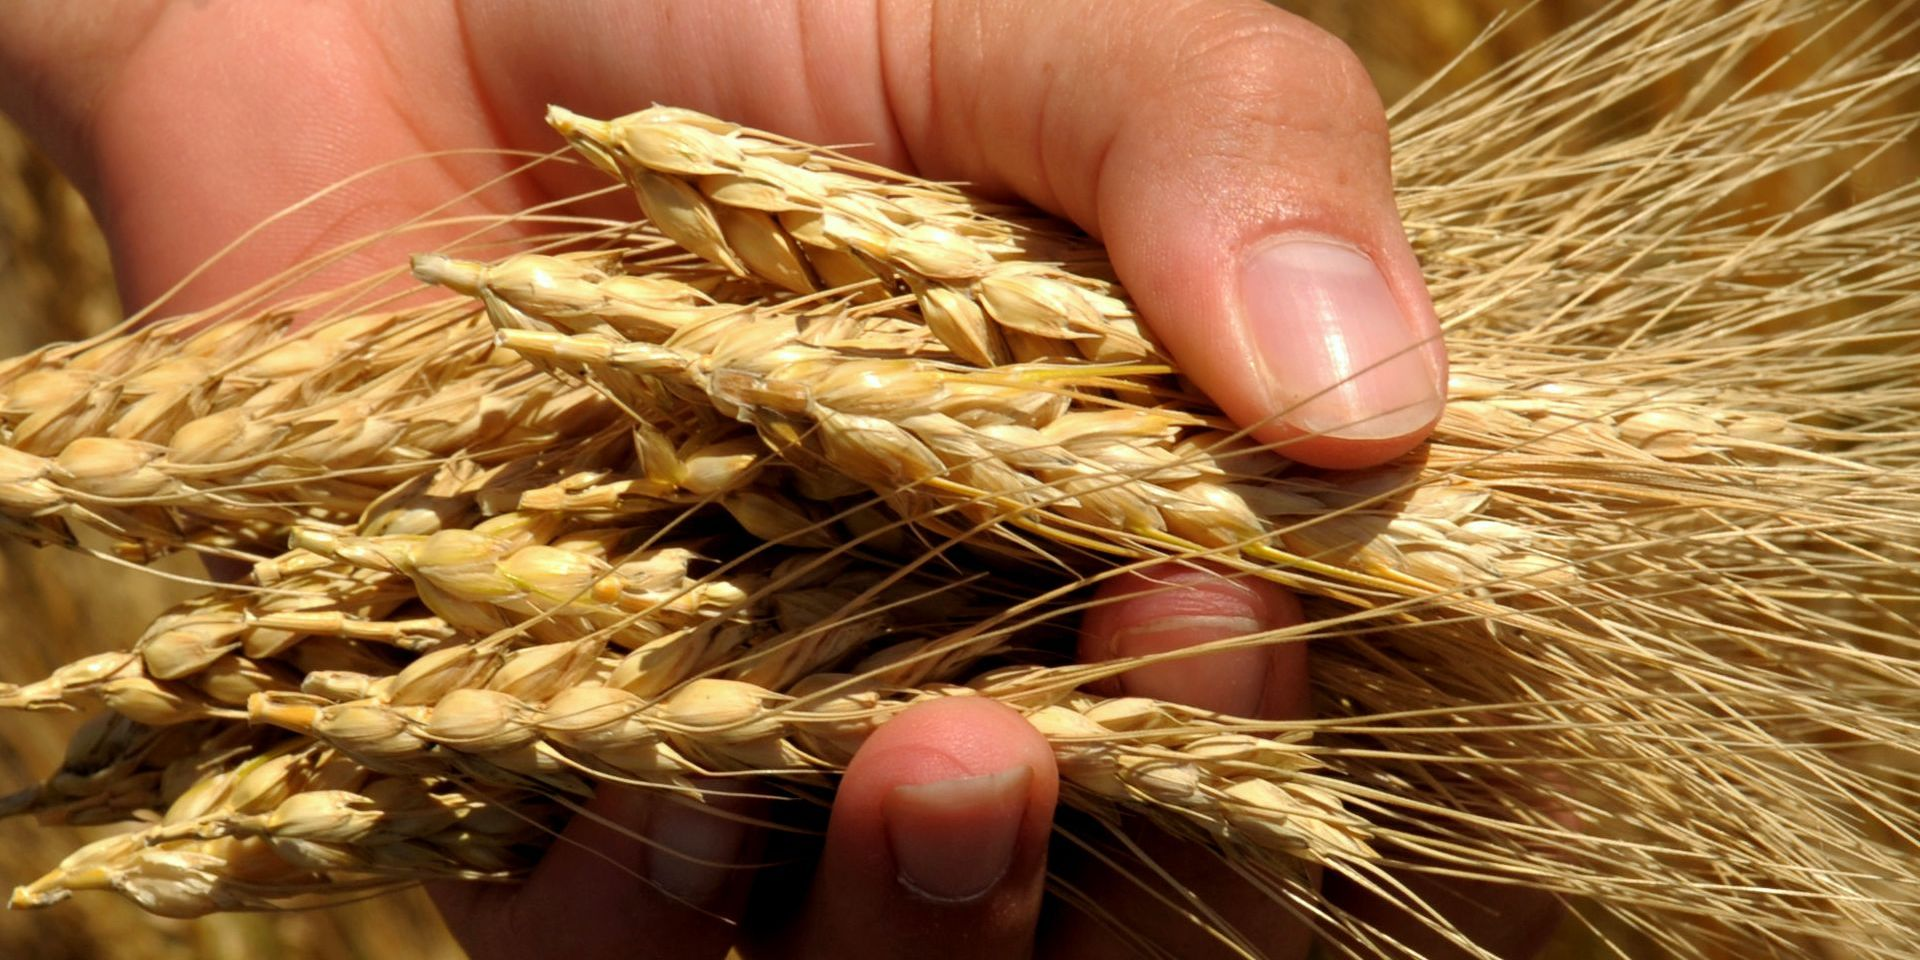 Wheat - foto KSRE (K-State Research and Extension) - CC BY 2.0